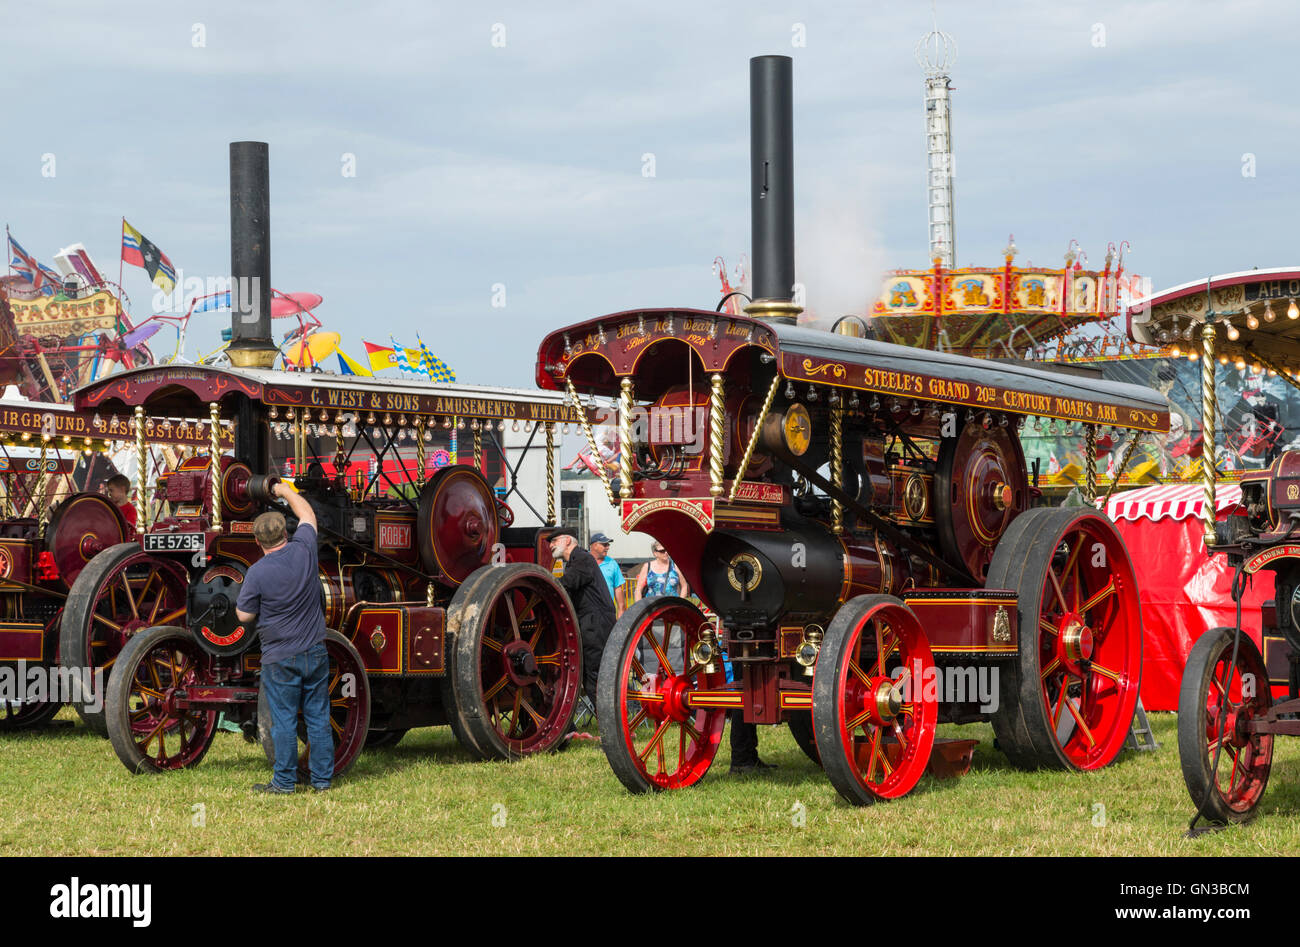 A superb line up of showmans engines at 2016 steam fair in blandford dorset - Stock Image